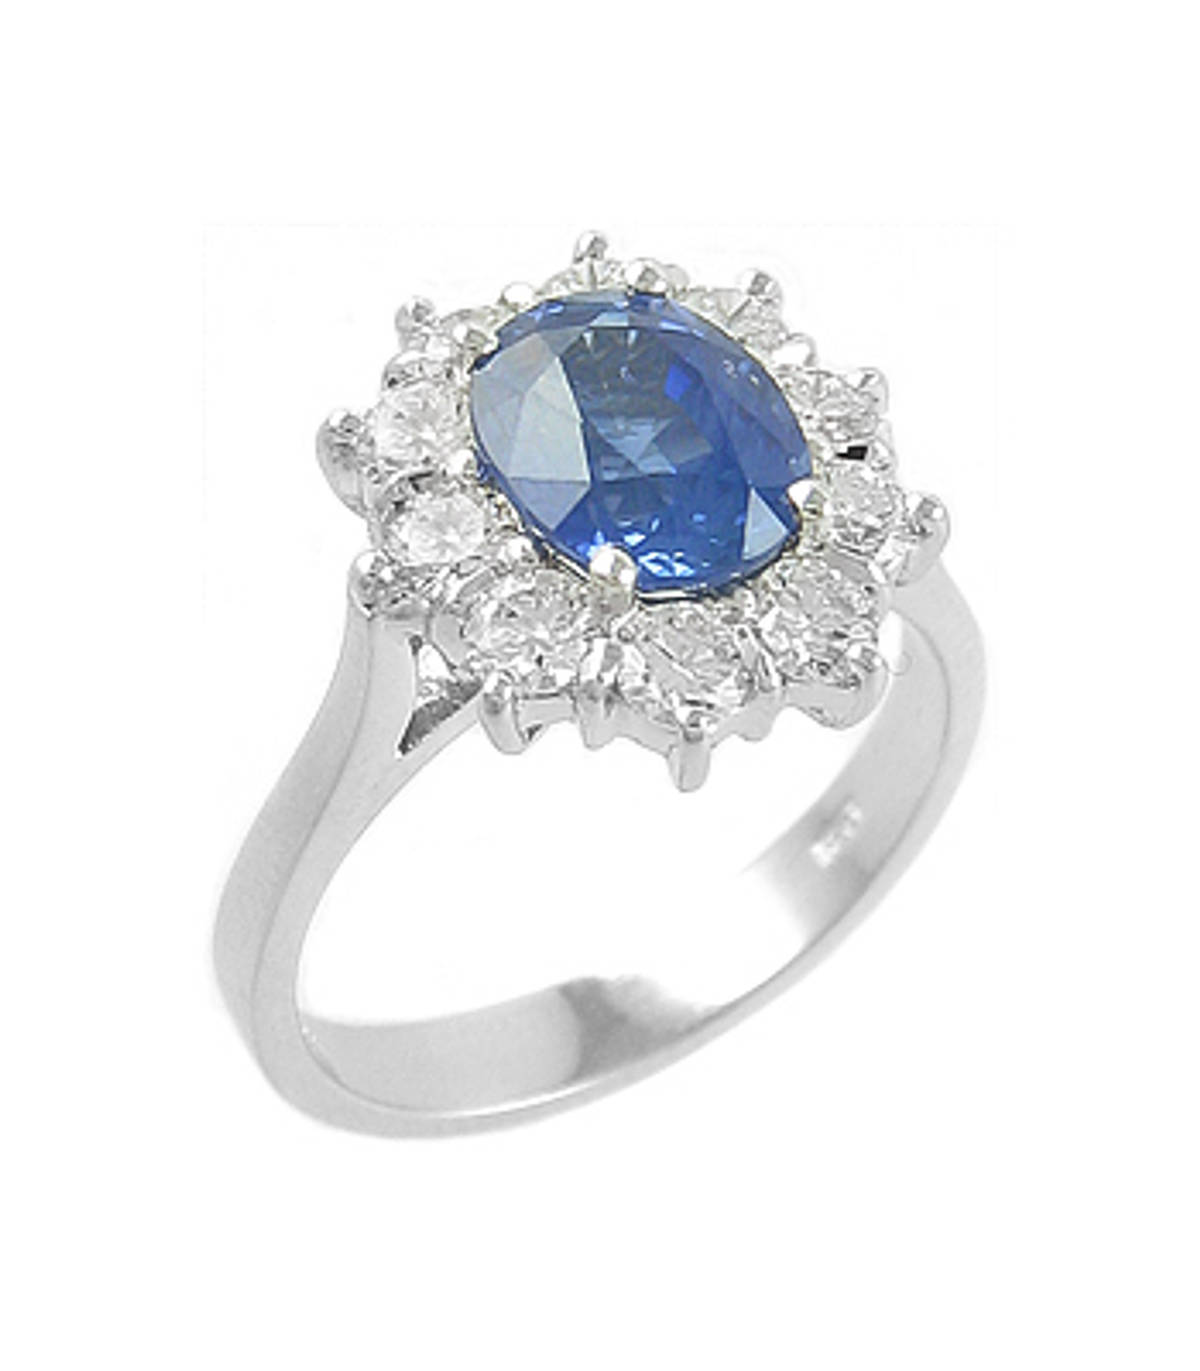 Sapphire and diamond cluster ringPictured item: sapphire: total 2.00ct/diamonds: total 1.20ct set in 18k white gold